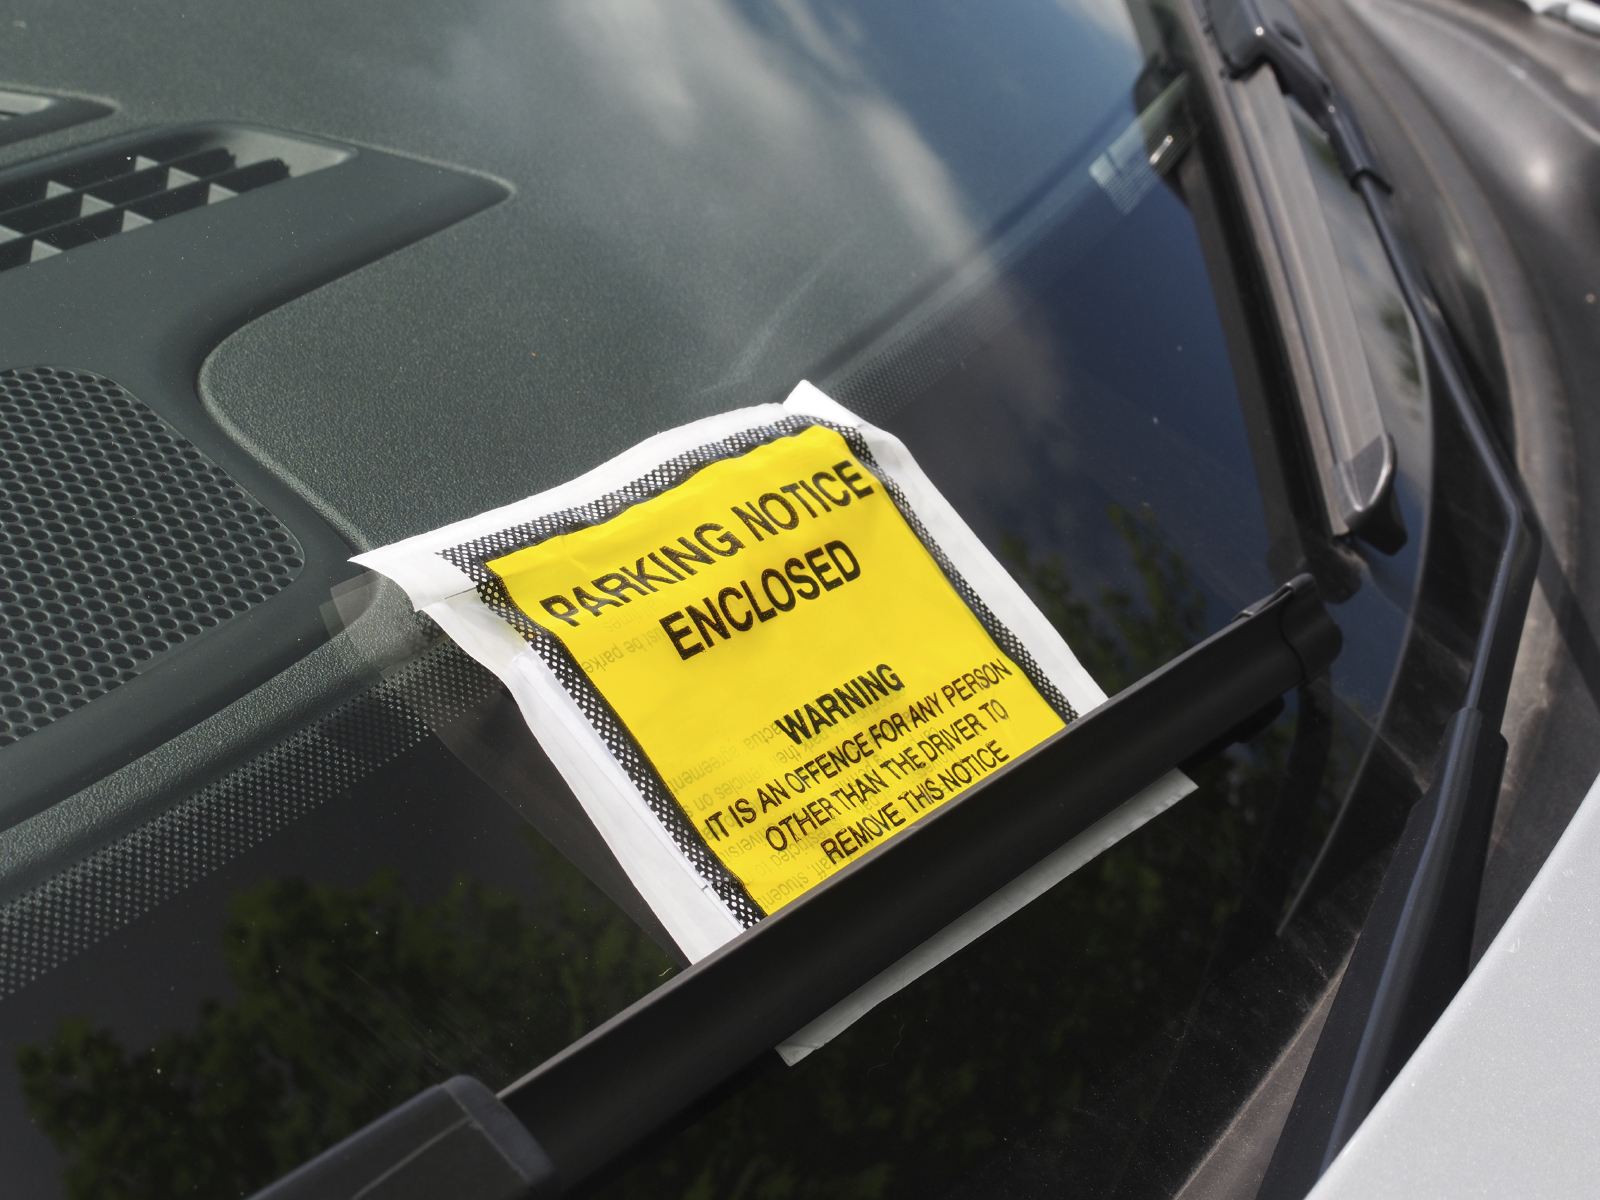 RELIGIOUS LEADERS WARN OF SUNDAY MORNING PARKING CHARGES